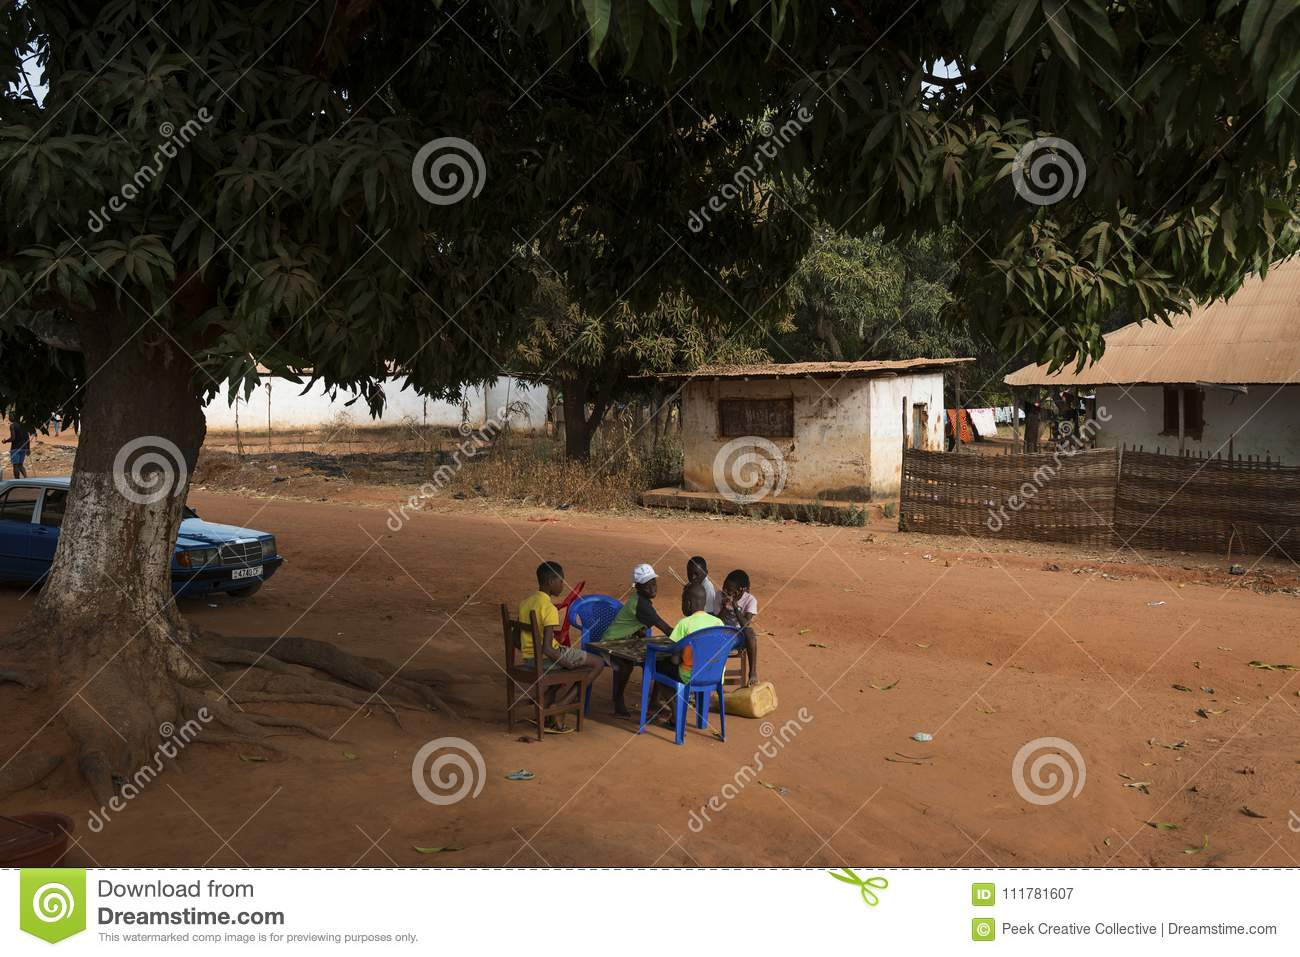 Group of children playing a game of checkers under a tree in the town of Nhacra in Guinea Bissau